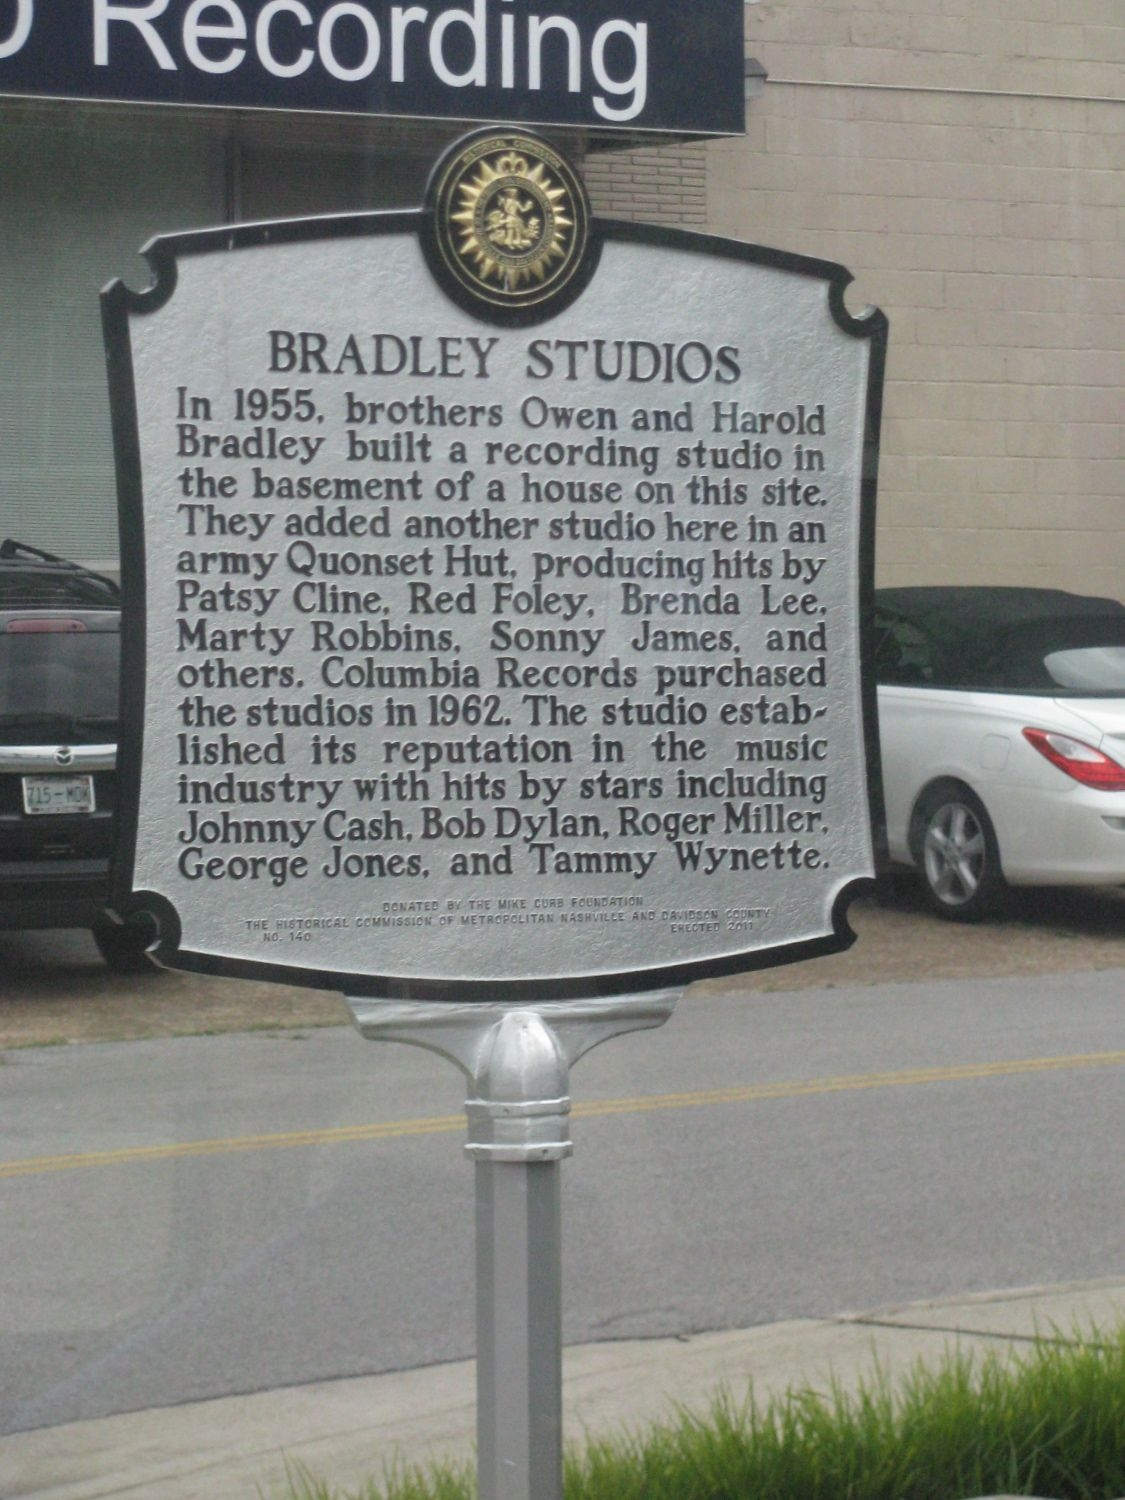 A historical marker near the site commemorates its role as the first music recording studio on Music Role. Image obtained from the Historical Marker Database.